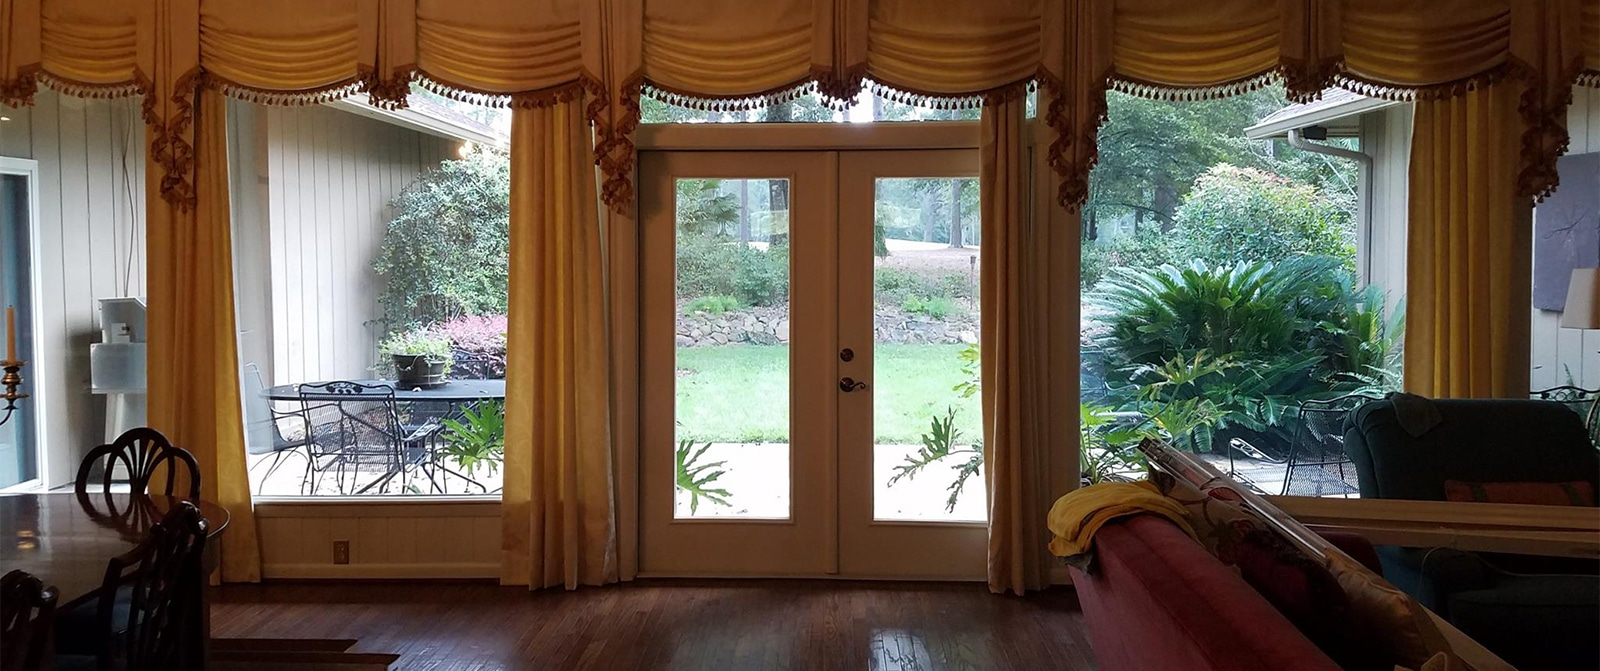 South carolina window tinting awnings and roller shades - Interior window tinting for privacy ...